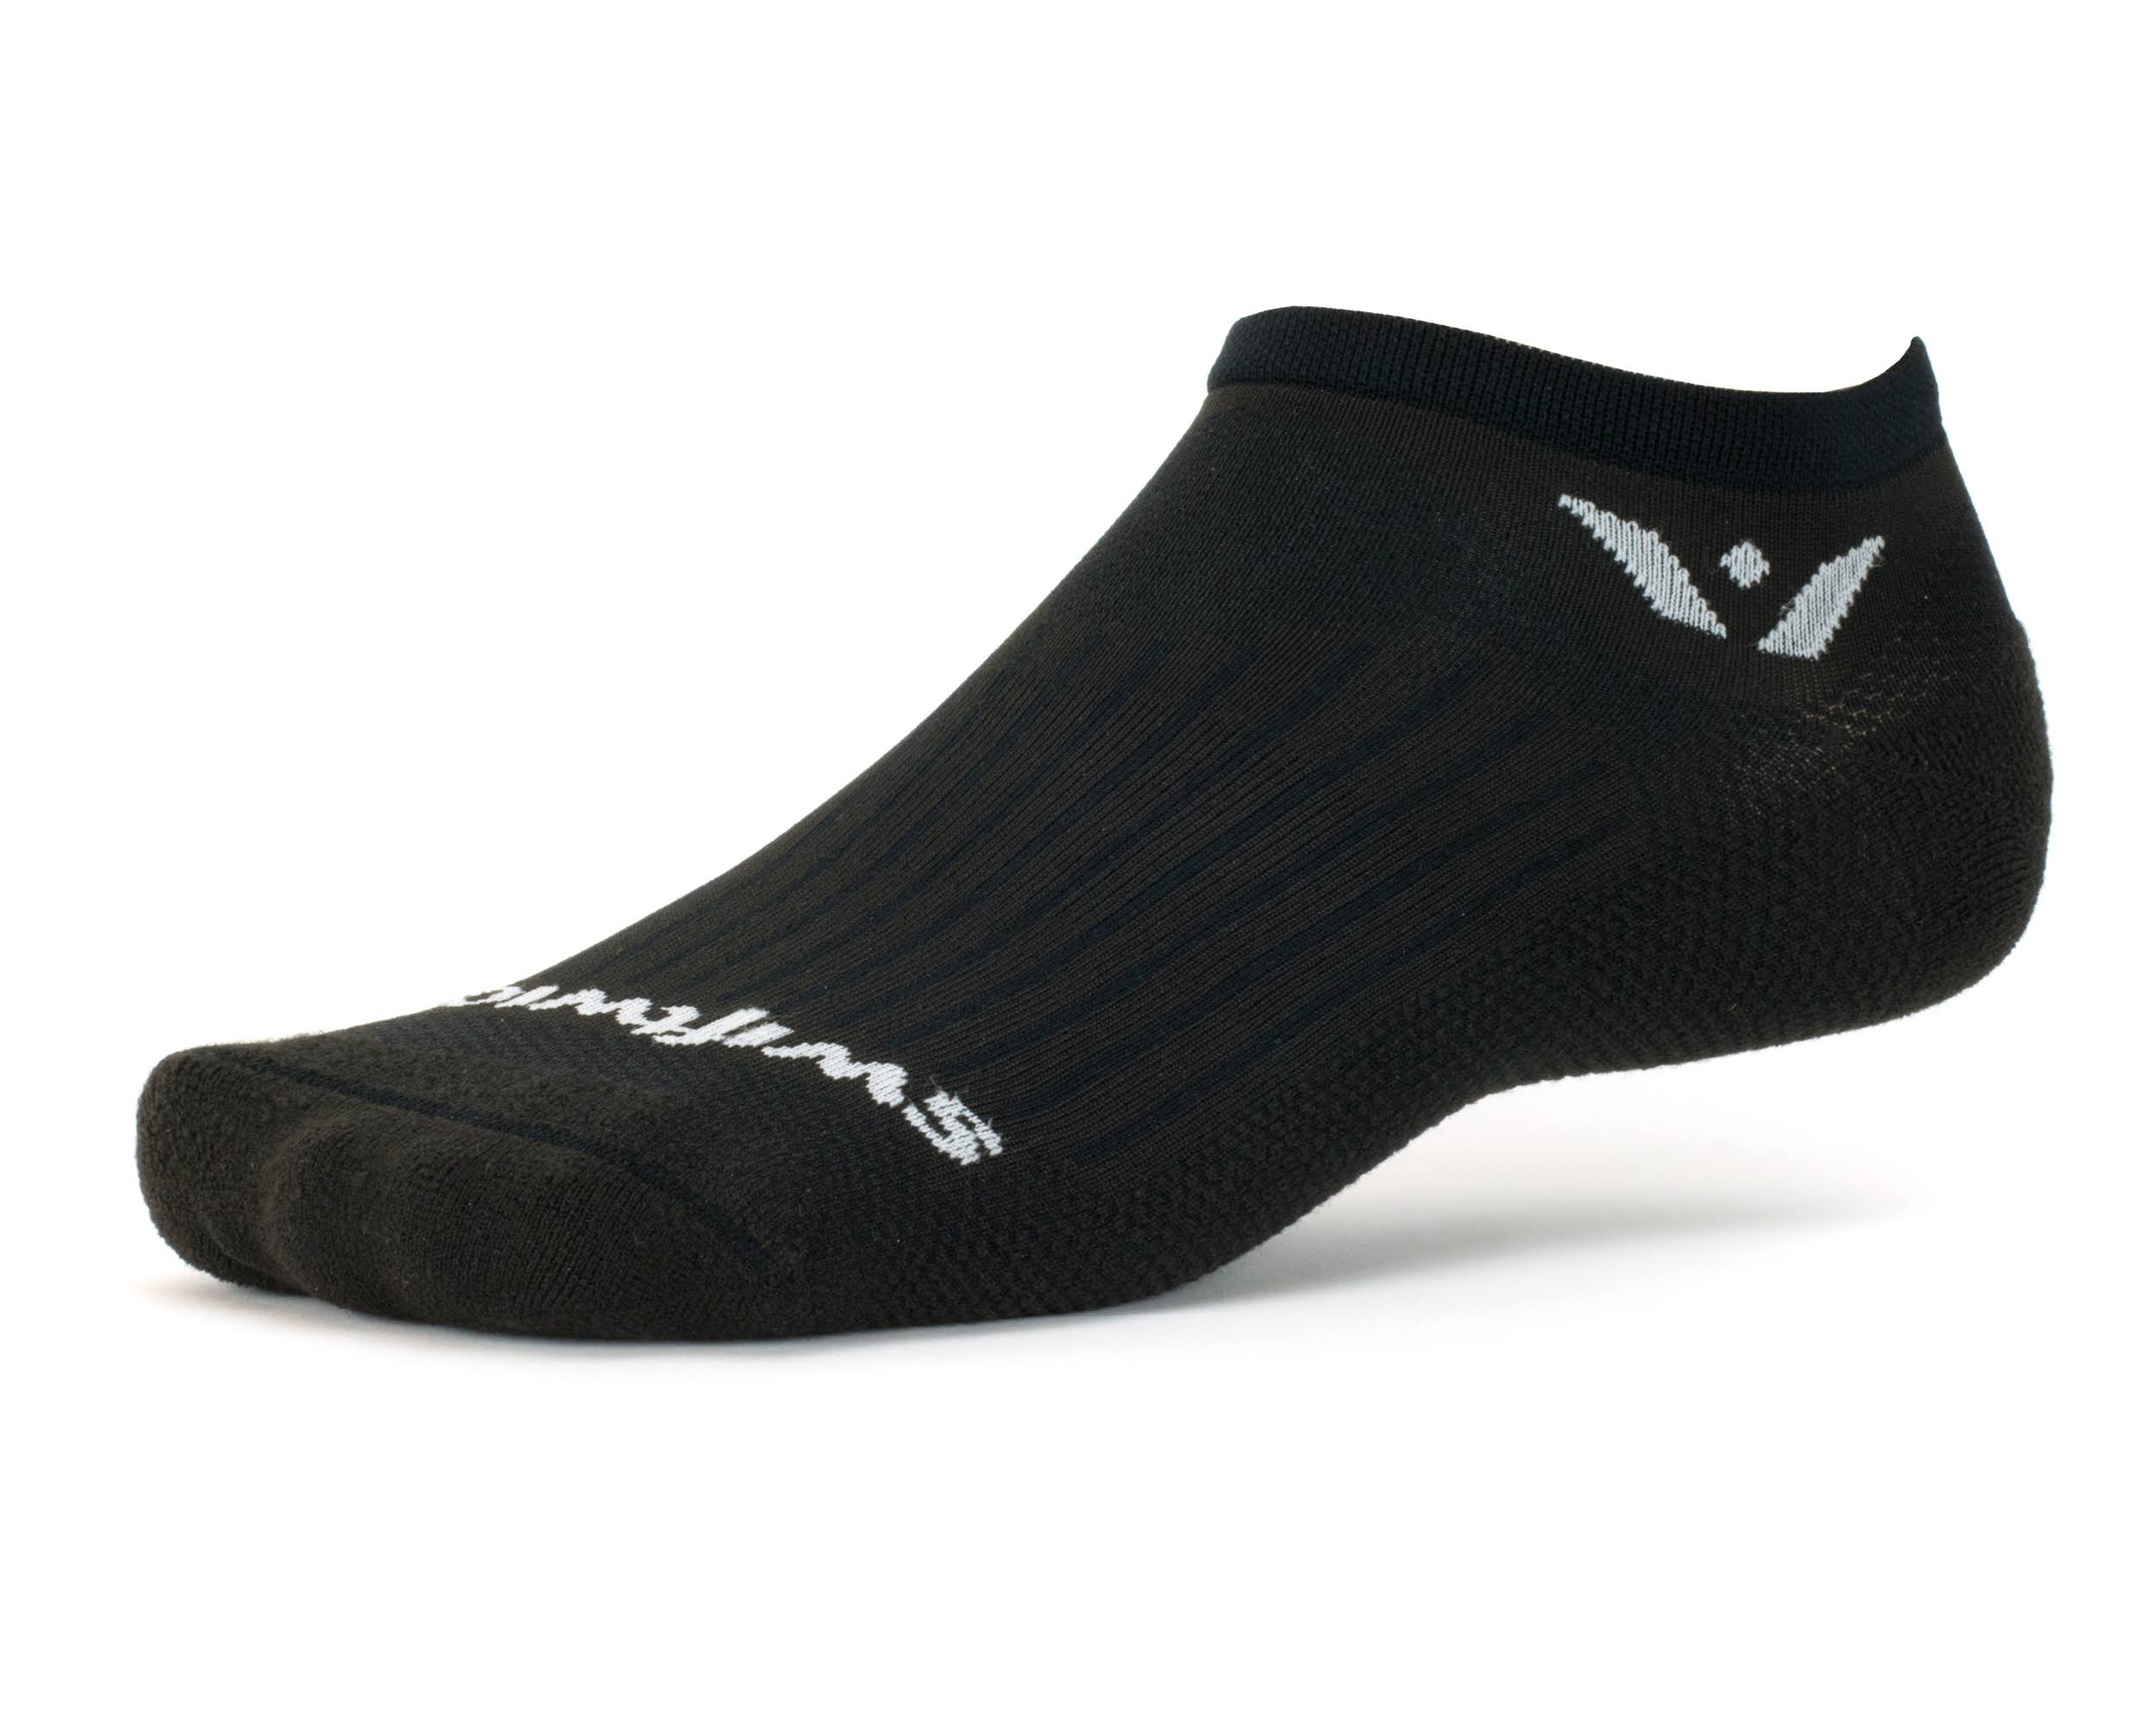 Swiftwick Aspire Zero Socks - Large (Black)